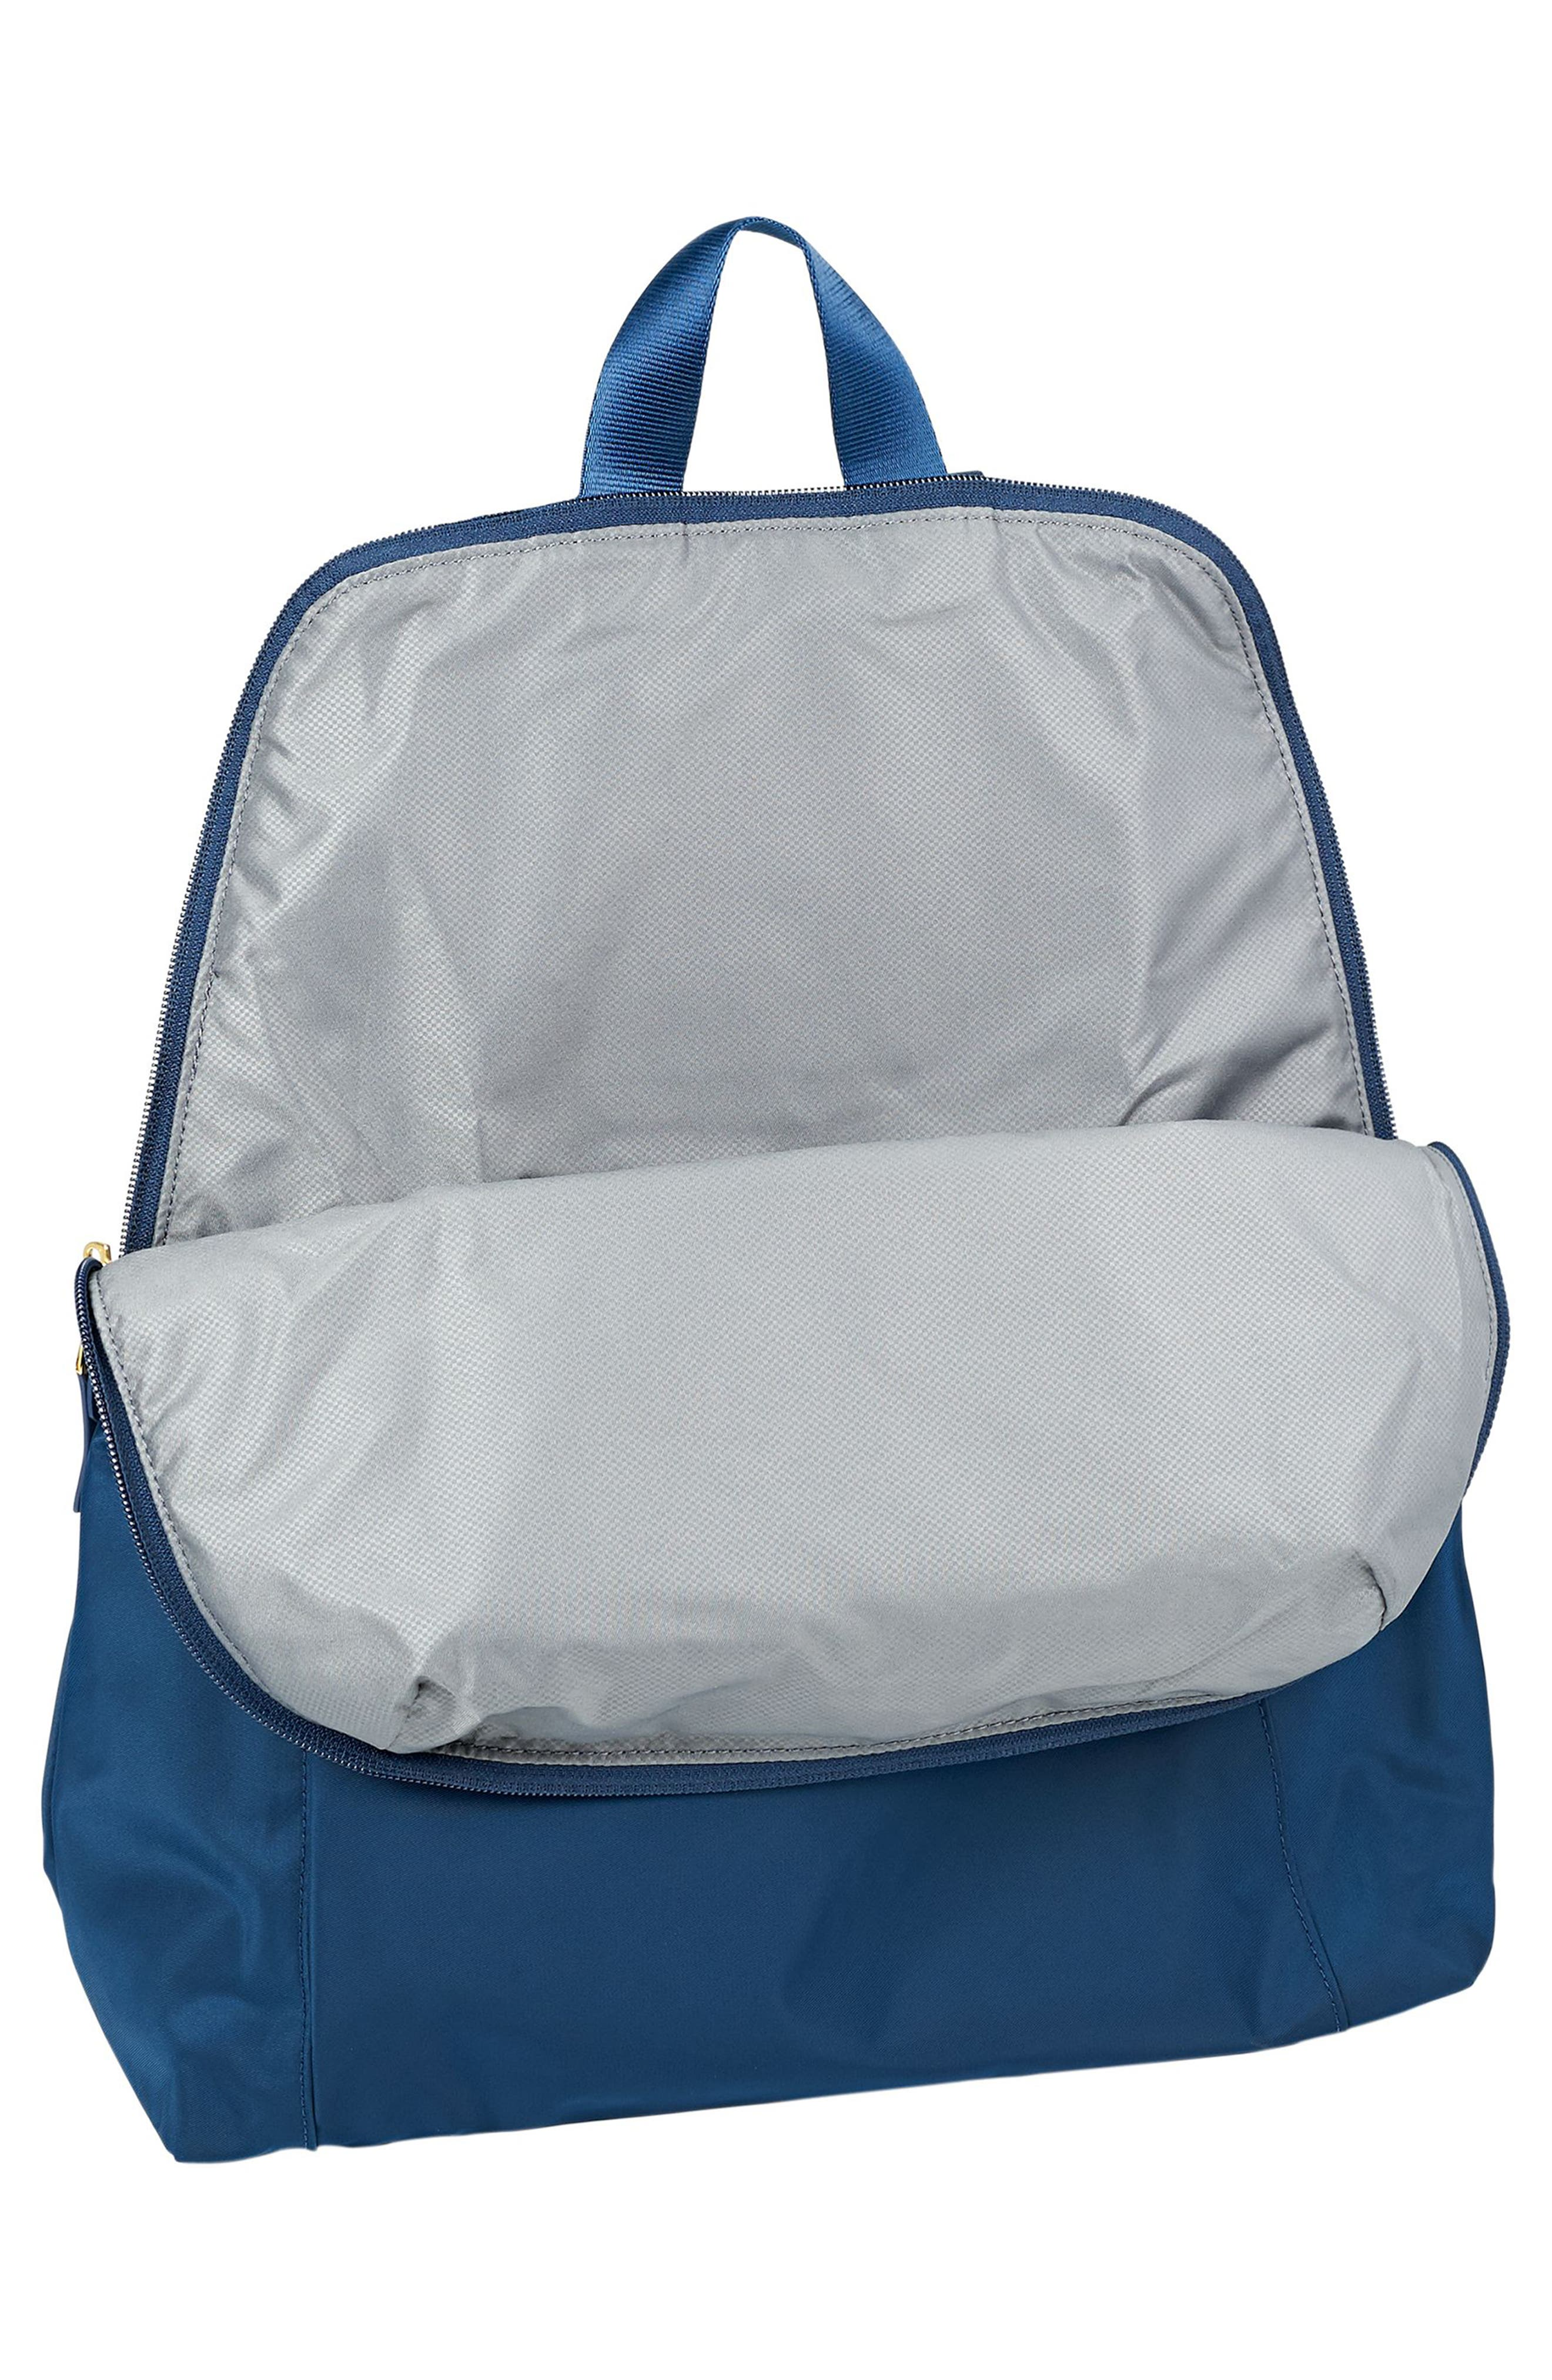 Just in Case<sup>®</sup> Back-Up Tavel Bag,                             Alternate thumbnail 4, color,                             Ocean Blue